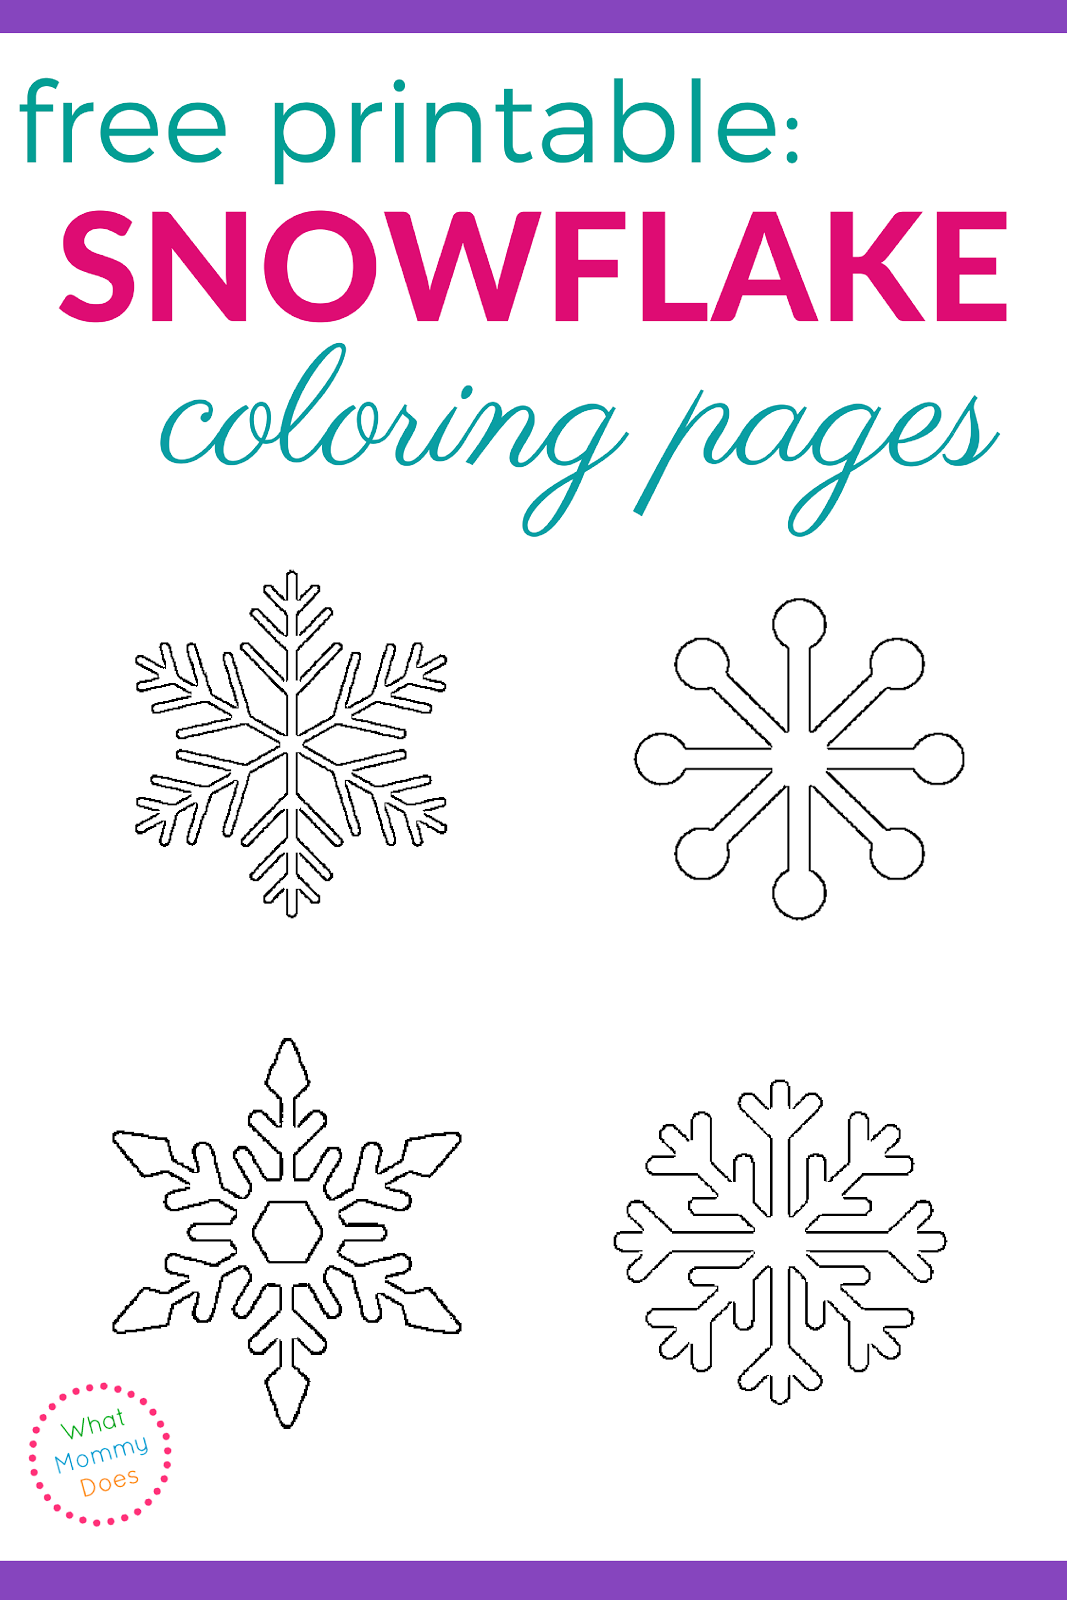 image relating to Snowflakes Printable referred to as Cost-free Printable Snowflake Coloring Webpages What Mommy Does